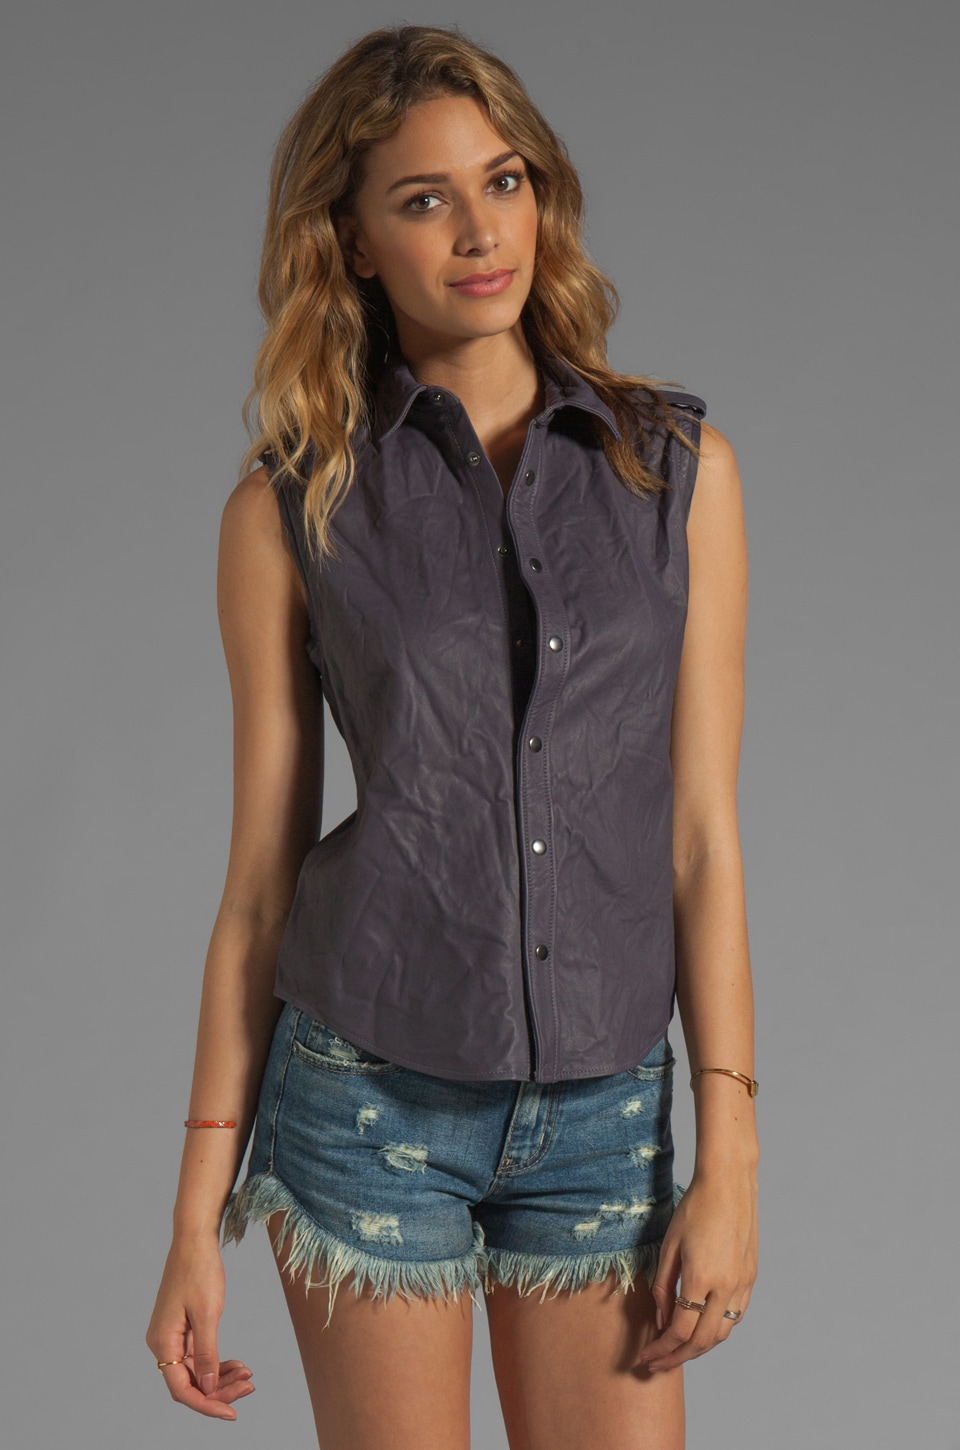 Gryphon Sleeveless Shirt in Grey